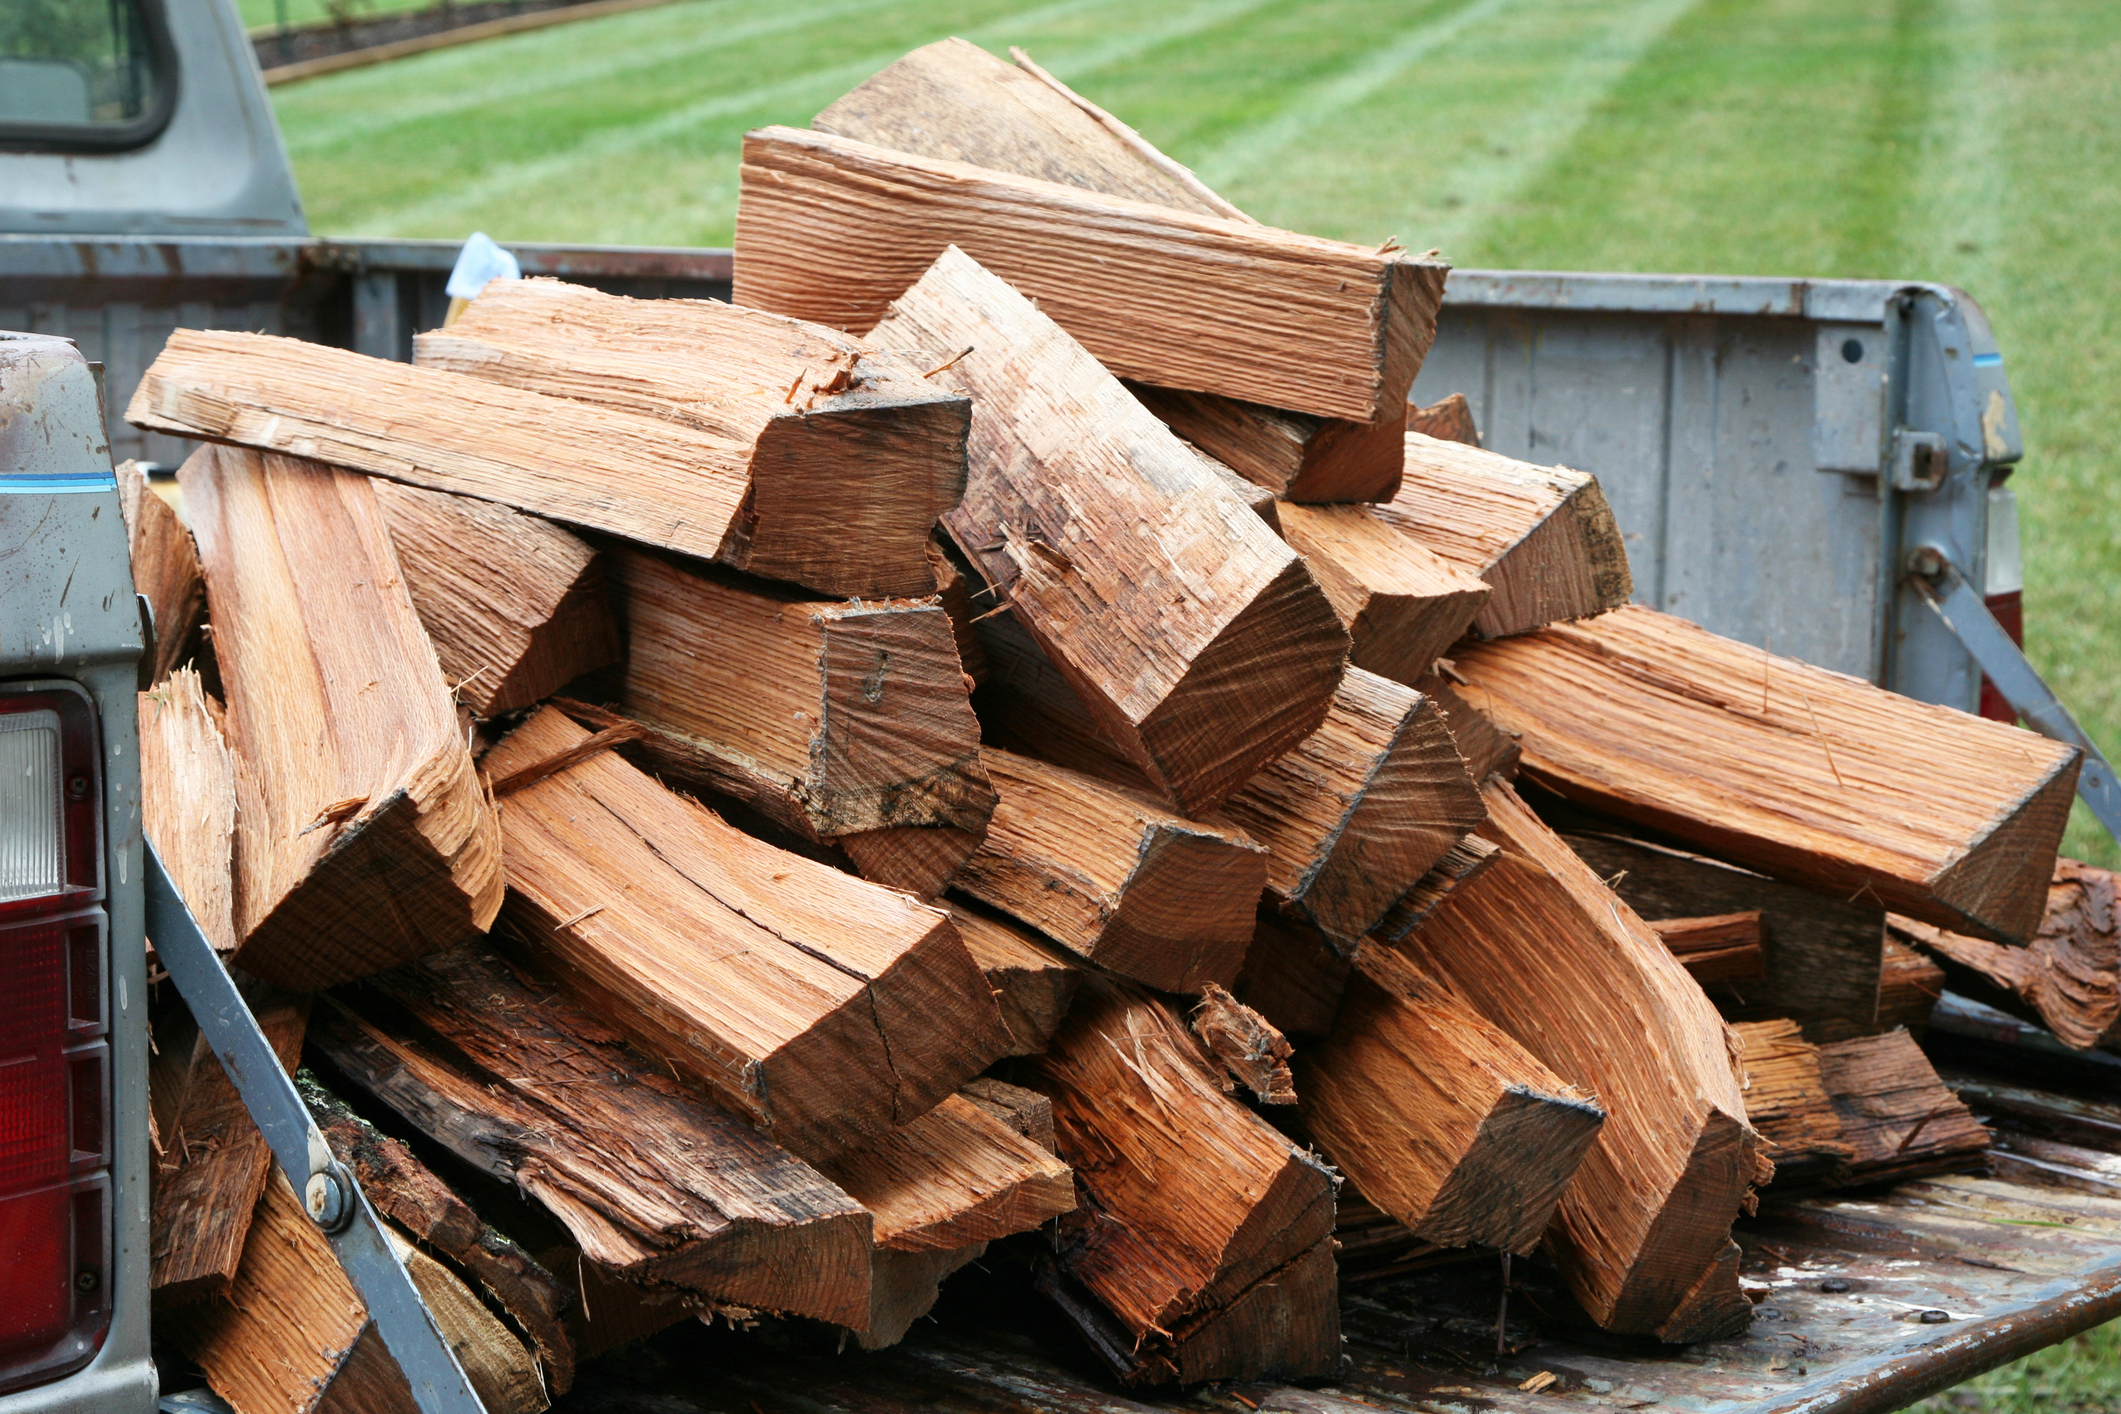 The average pickup truck can not hold an entire cord of wood.